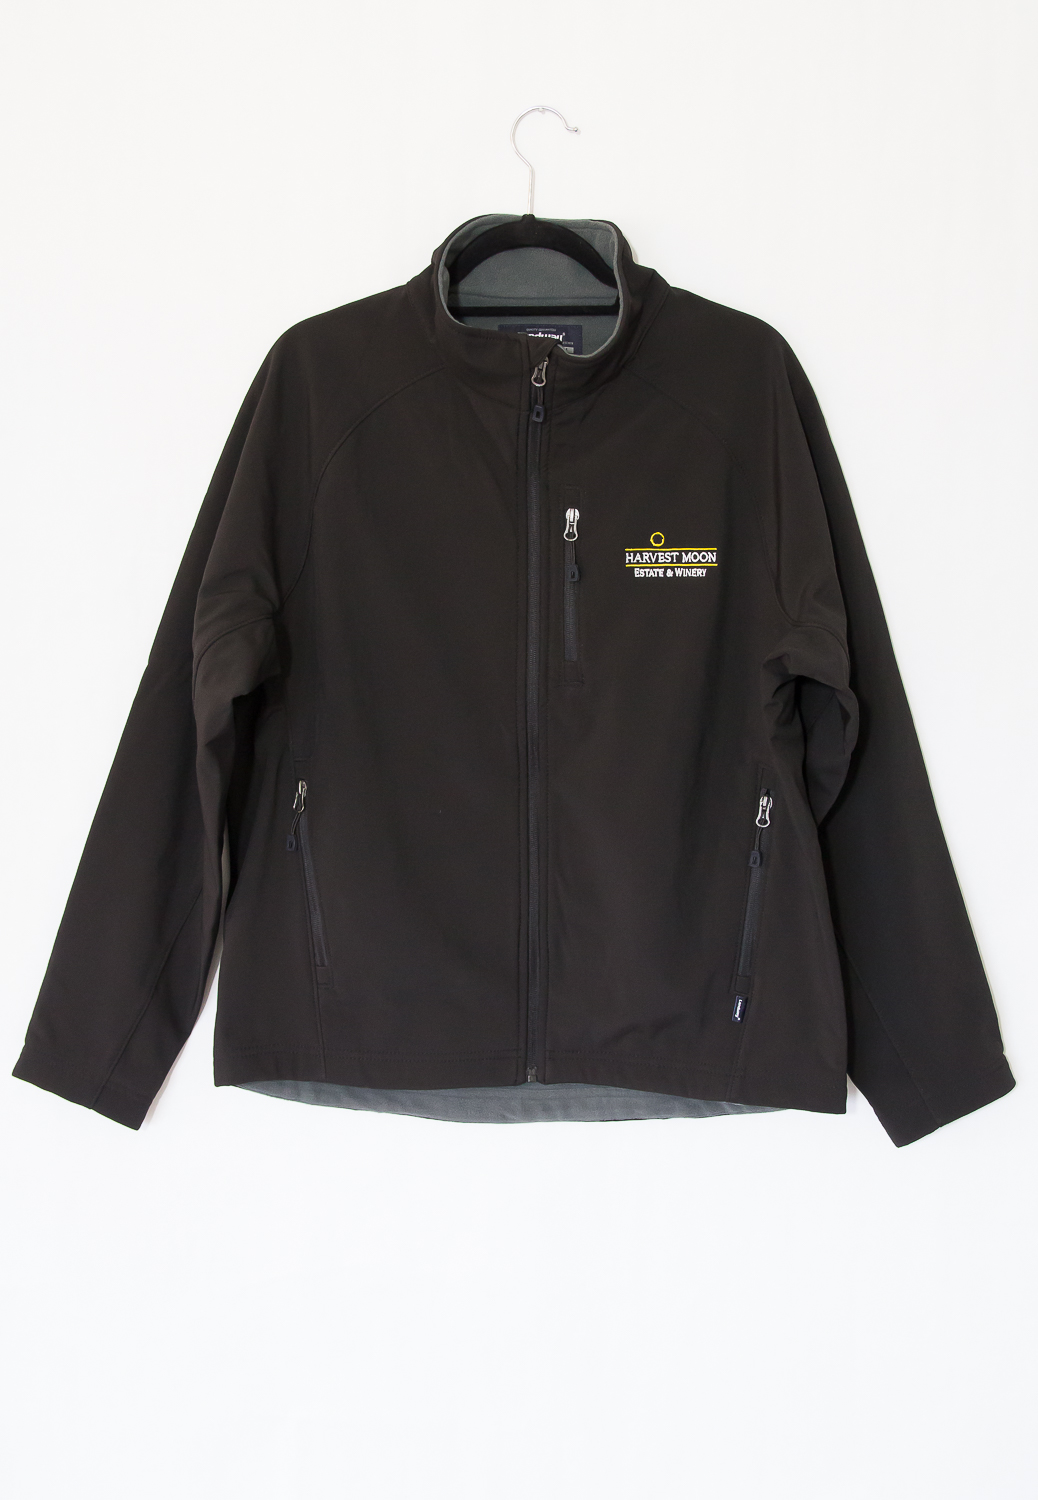 Clothing - Men's Black Jacket